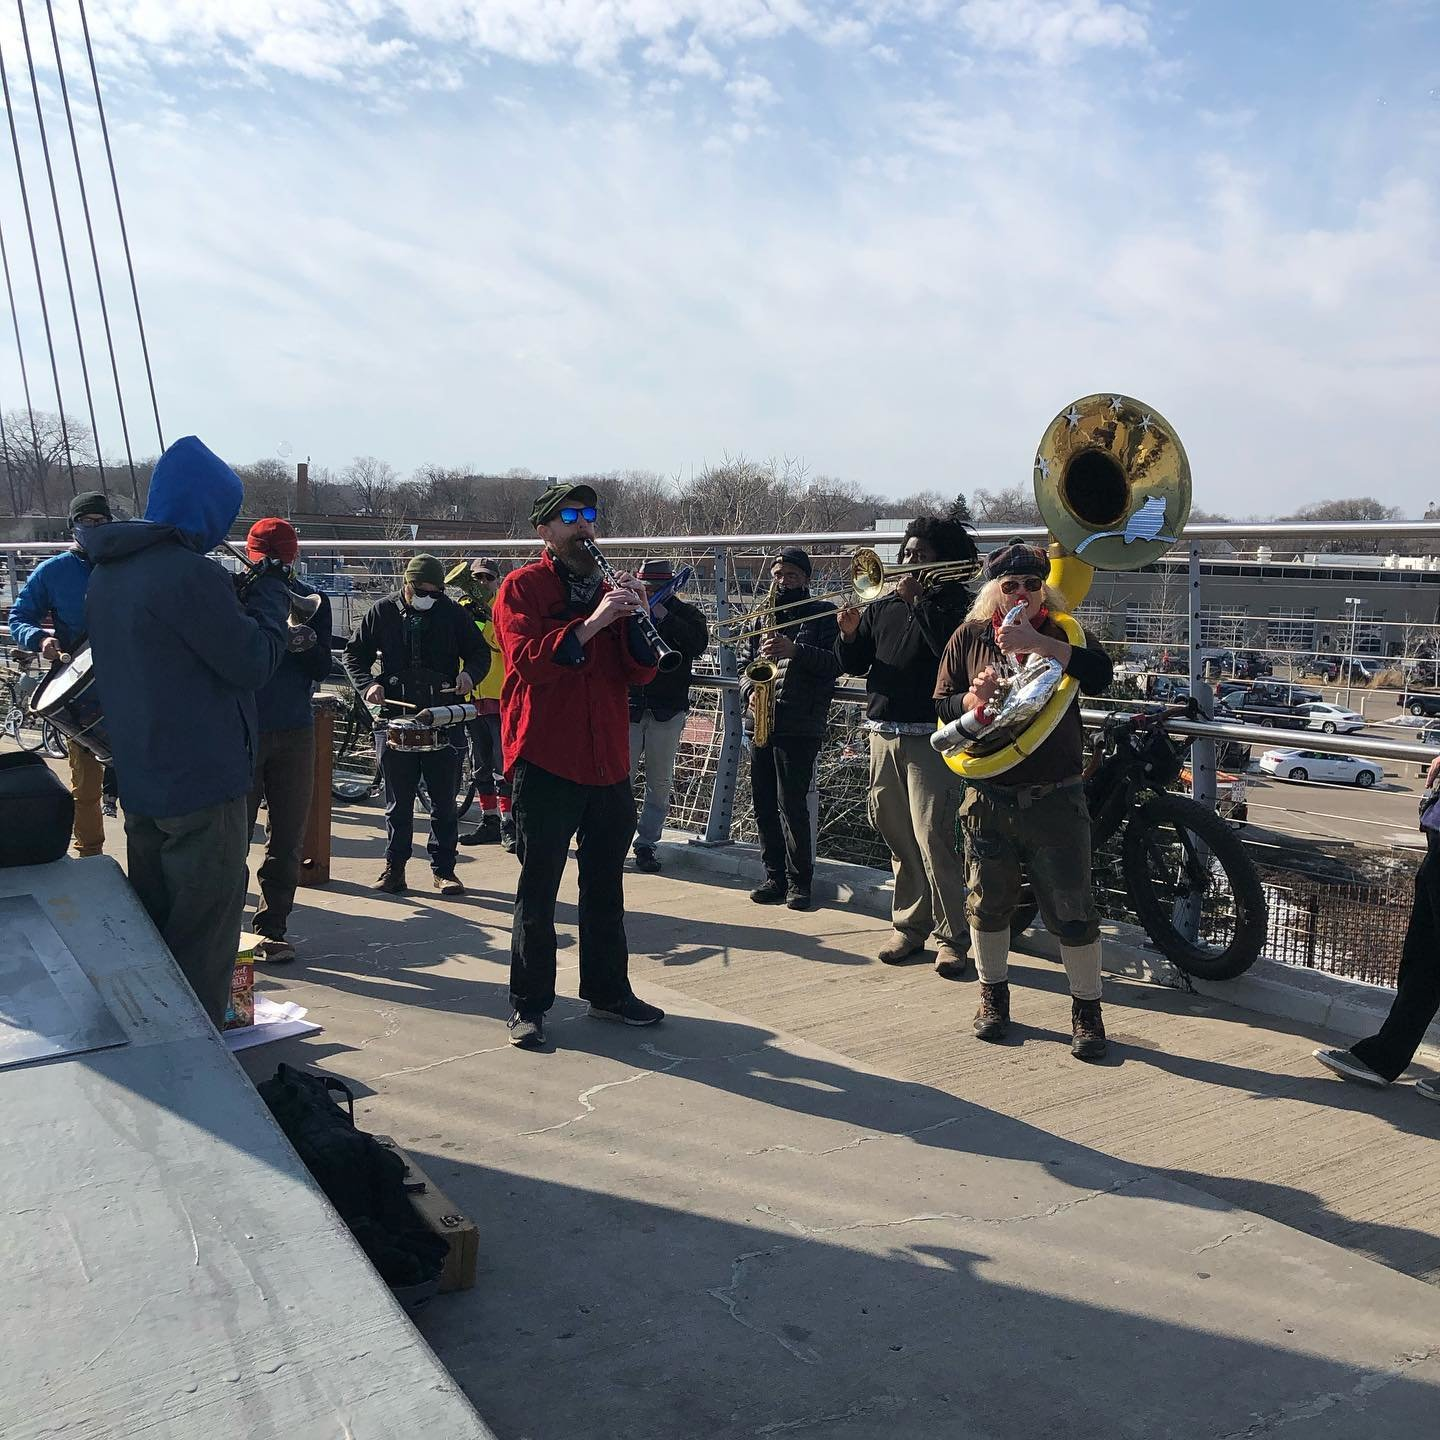 People rallied in support of the East Phillips Indoor Urban Farm on Sunday, March 7. They are standing on the Sabo Bridge overlooking the site.